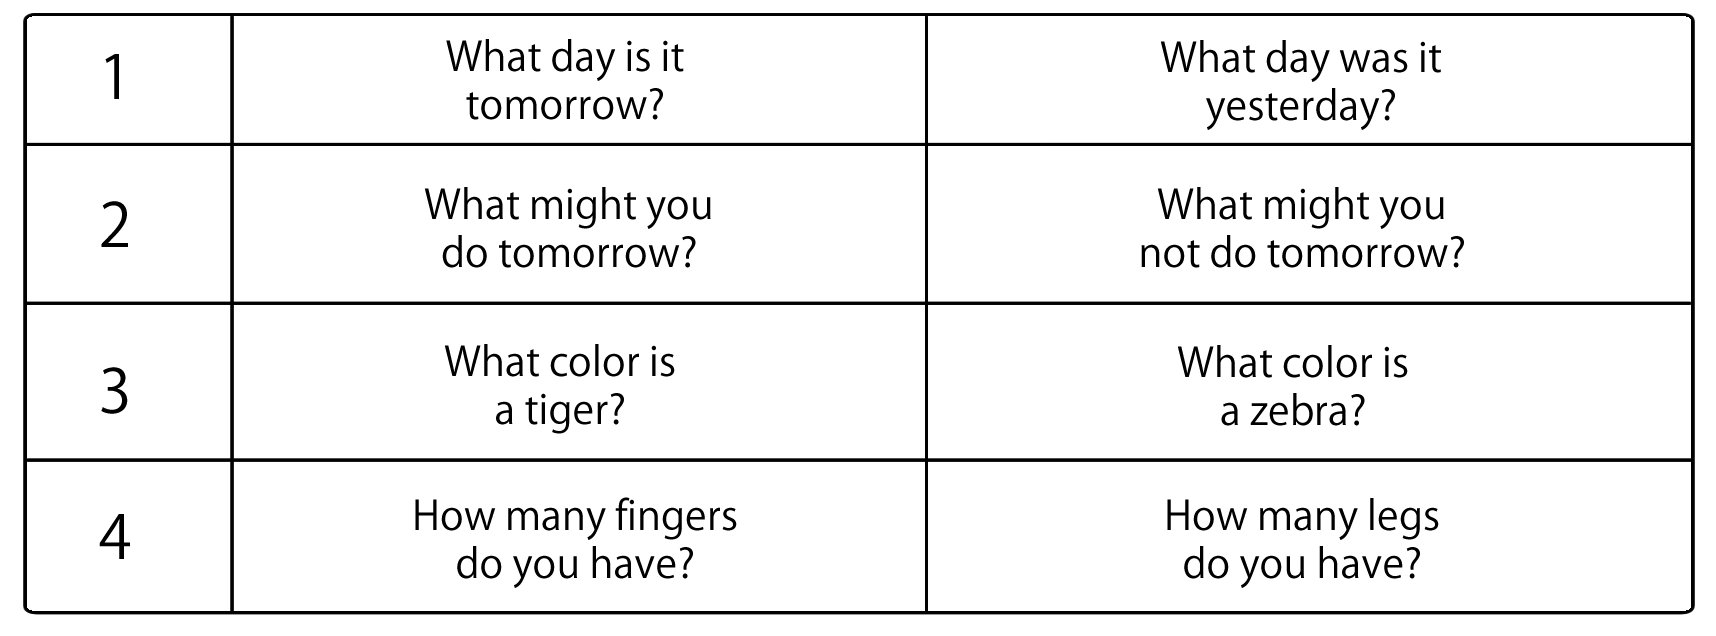 english assignment speech A thorough overview of the english parts of speech: nouns, pronouns, adjectives, verbs, adverbs, prepositions, conjunctions and interjections.